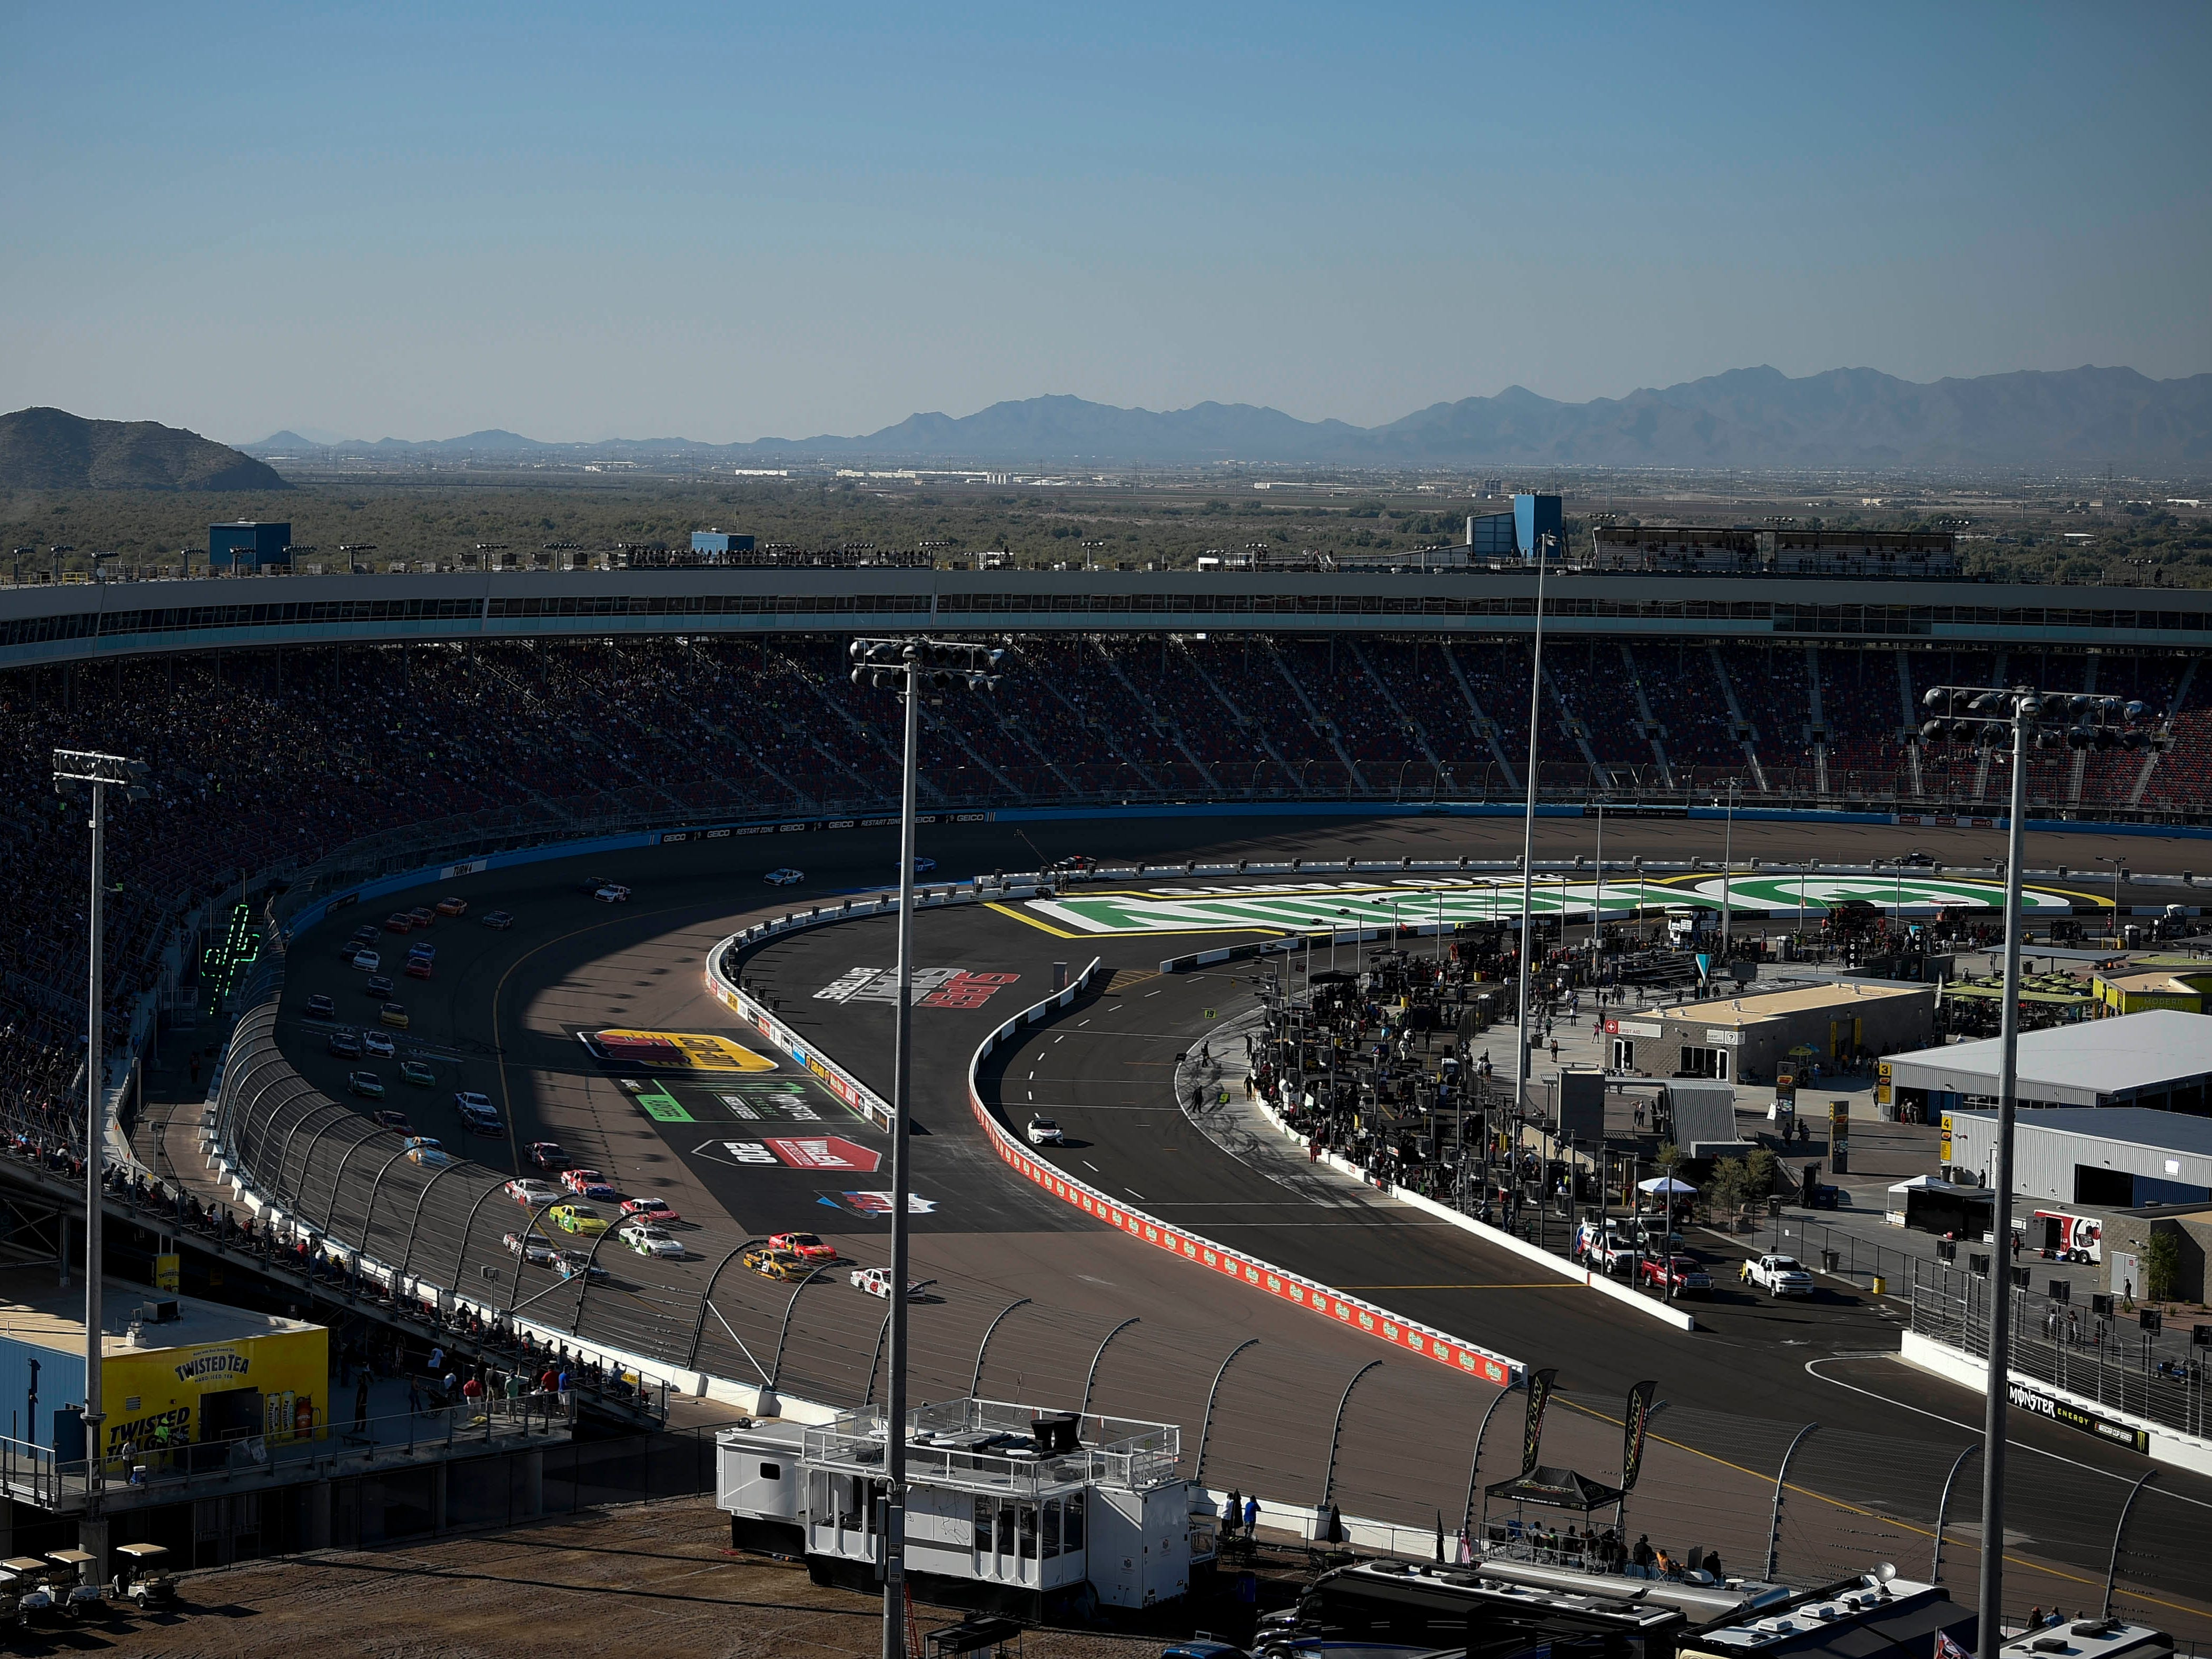 Nov 10, 2018; Avondale, AZ, USA; A general view of ISM Raceway during the NASCAR Xfinity Series Race. Mandatory Credit: Kelvin Kuo-USA TODAY Sports